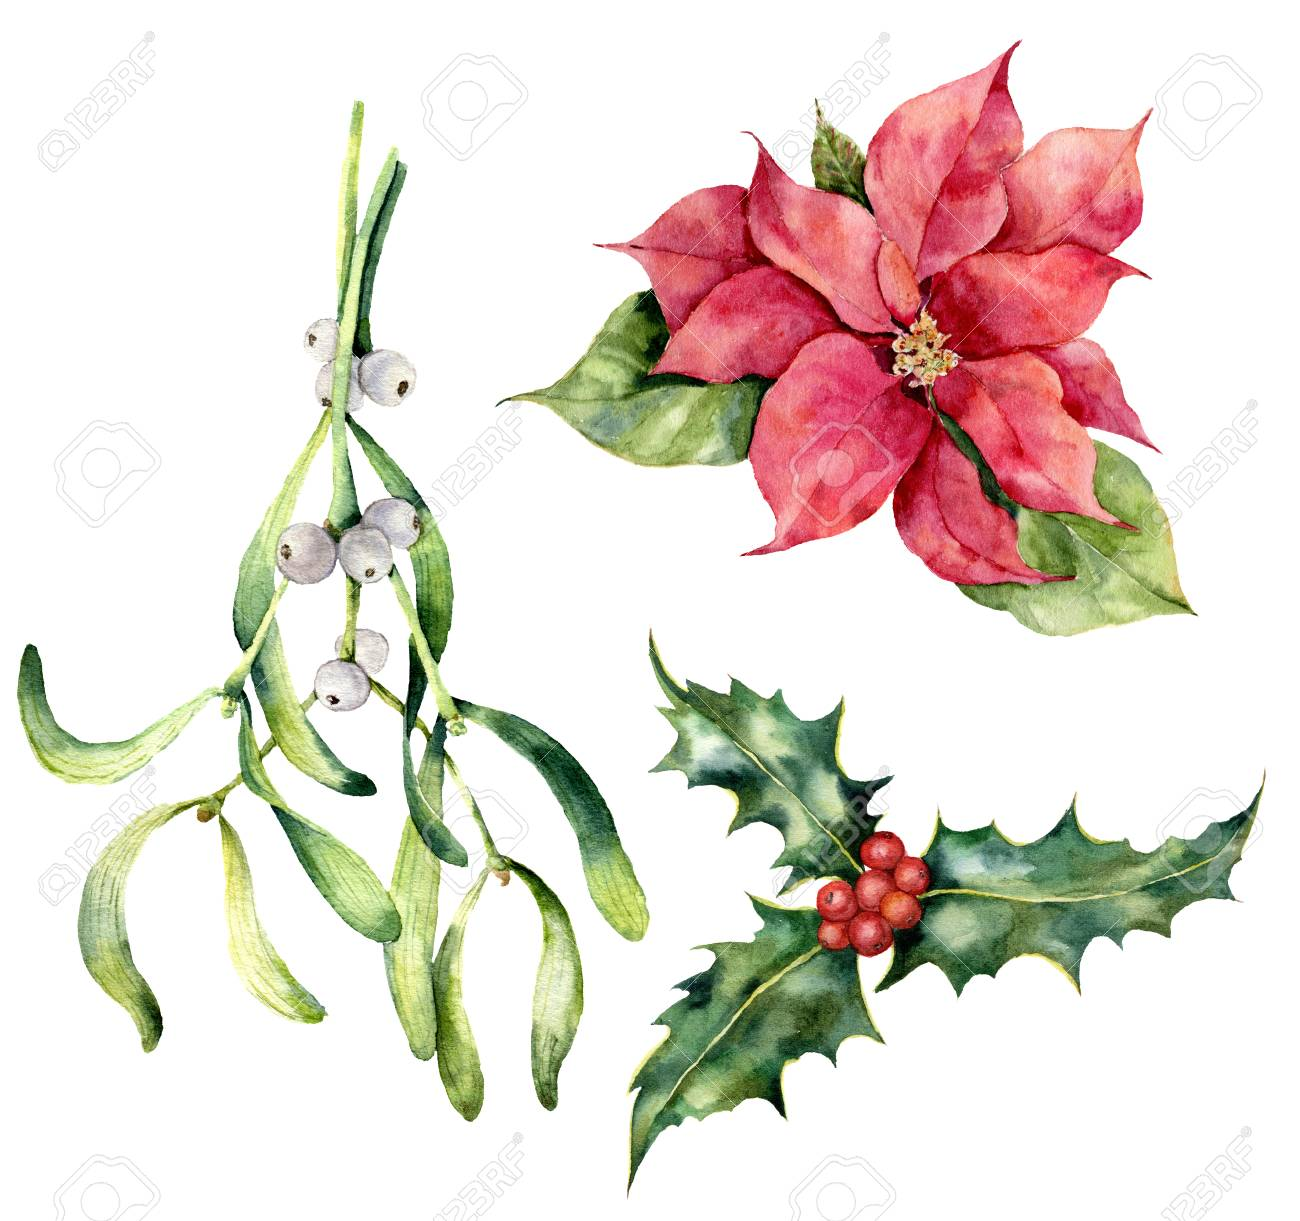 Watercolor Christmas Plants Hand Painted Poinsettia Mistletoe